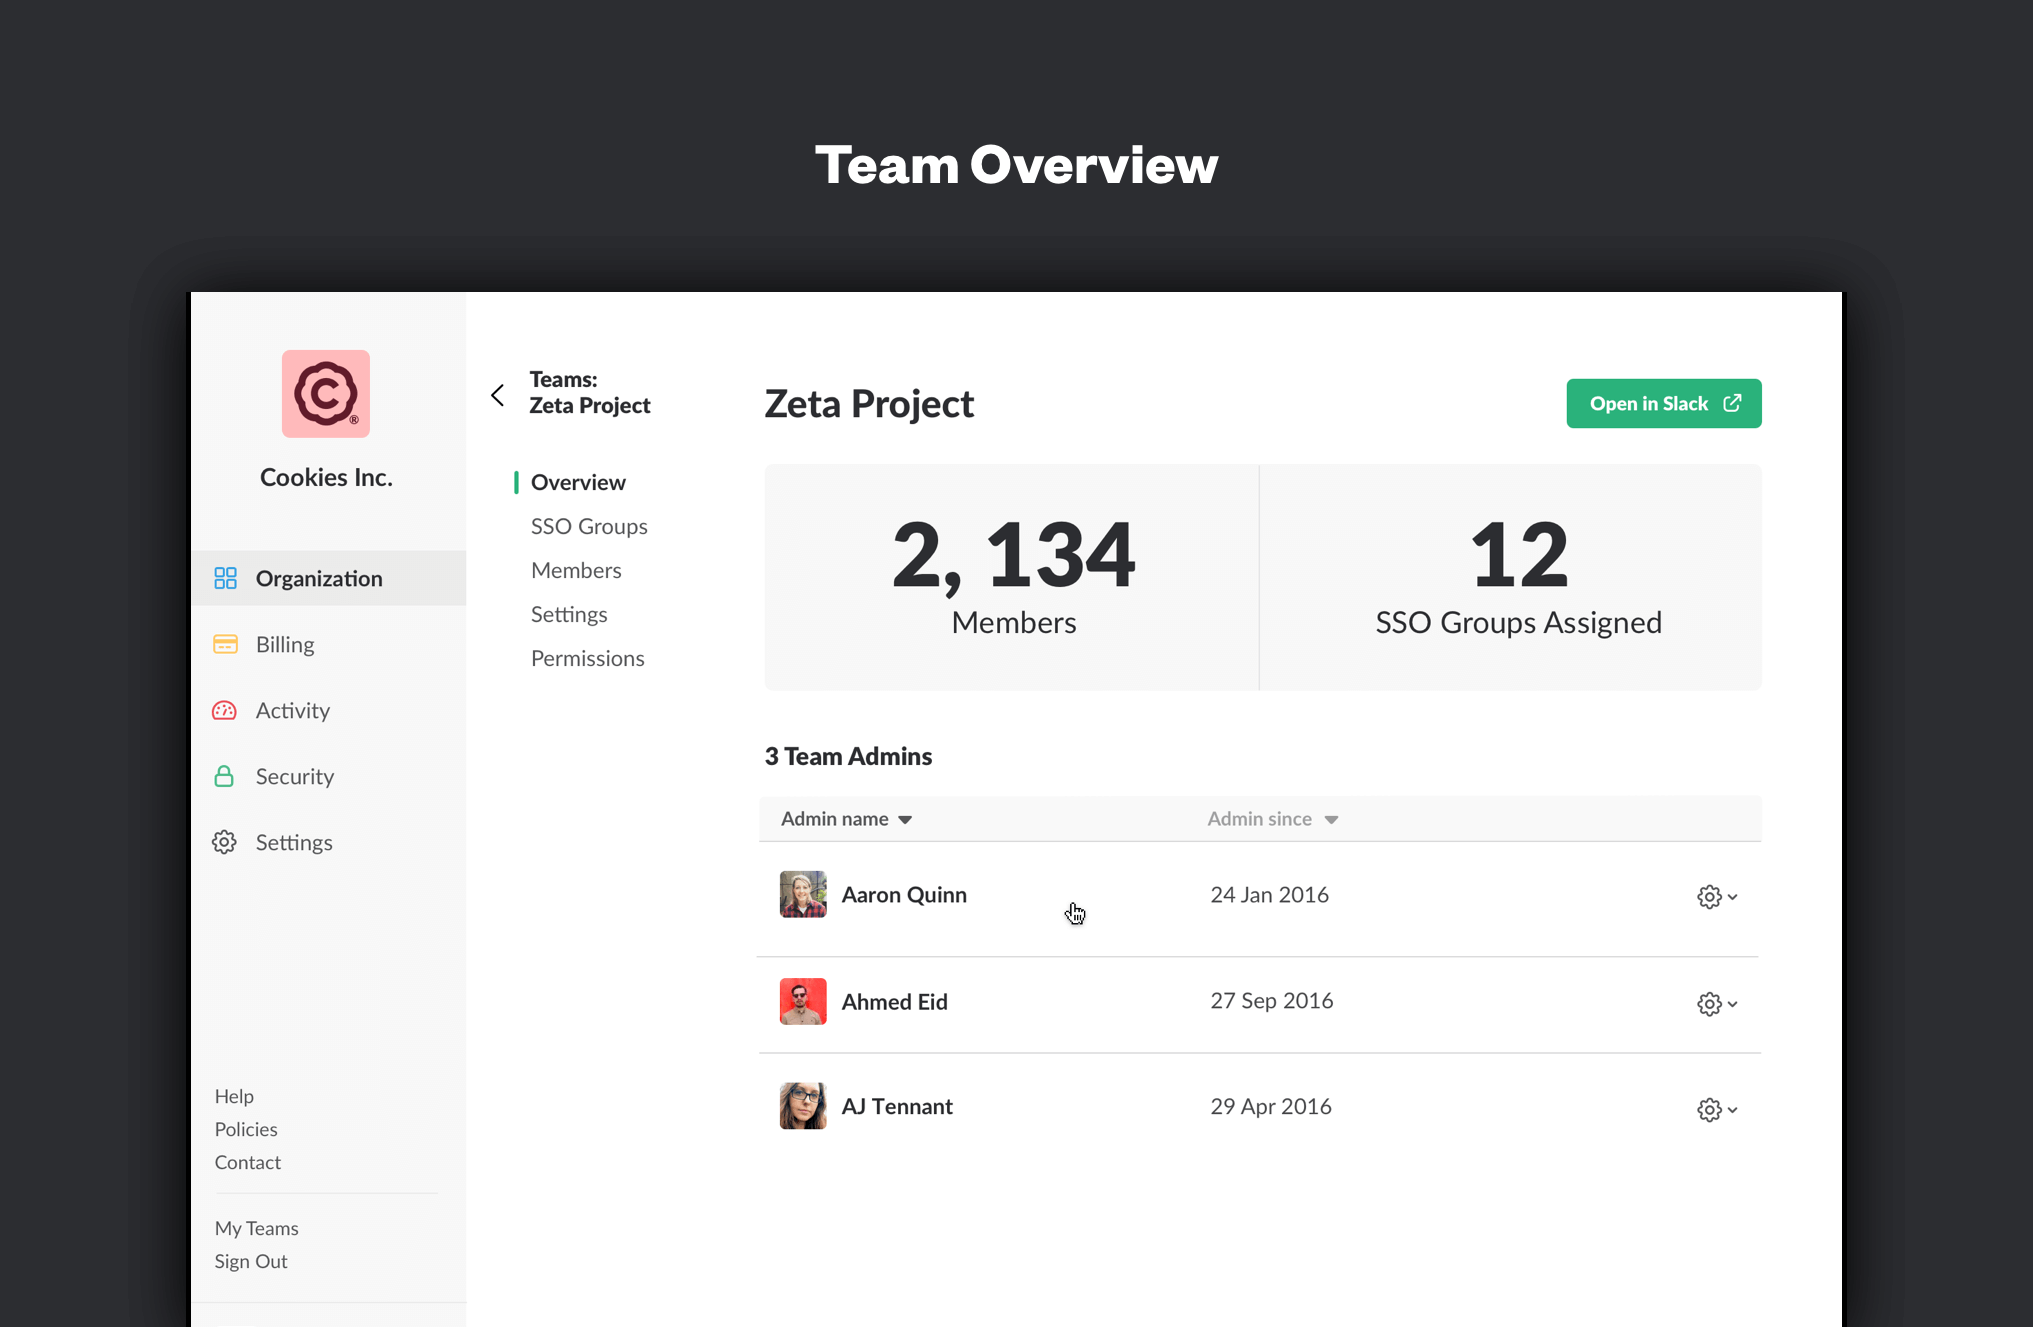 Showcasing team overviews within Slack's Enterprise Grid.